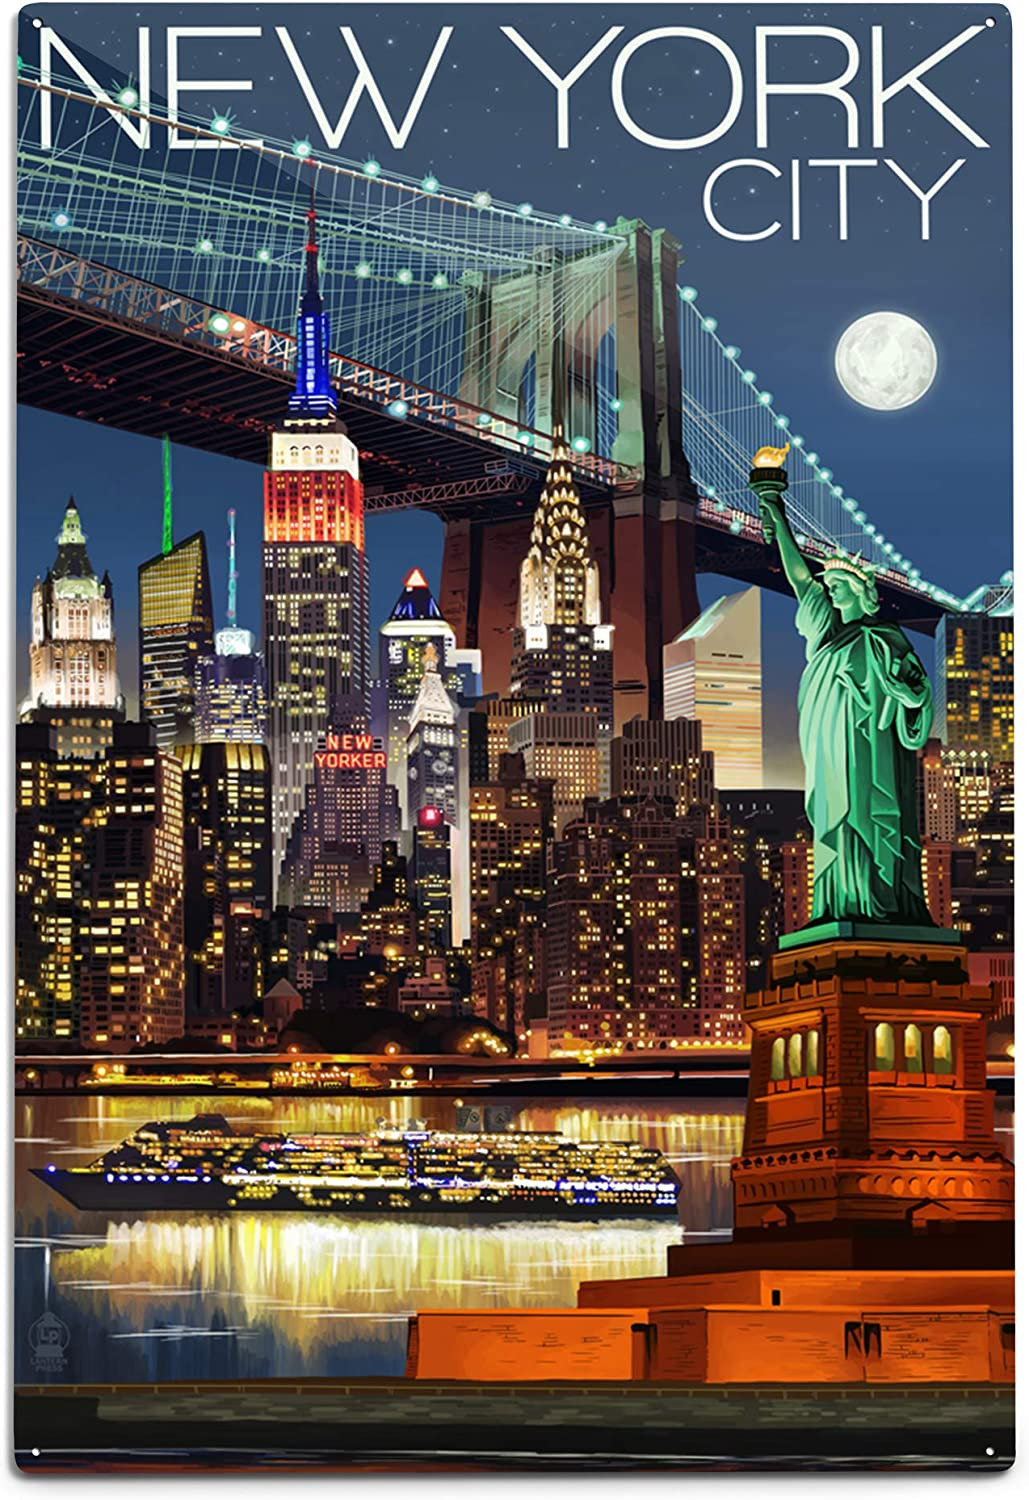 Amazon Com New York Skyline At Night 12x18 Art Print Wall Decor Travel Poster Posters Prints